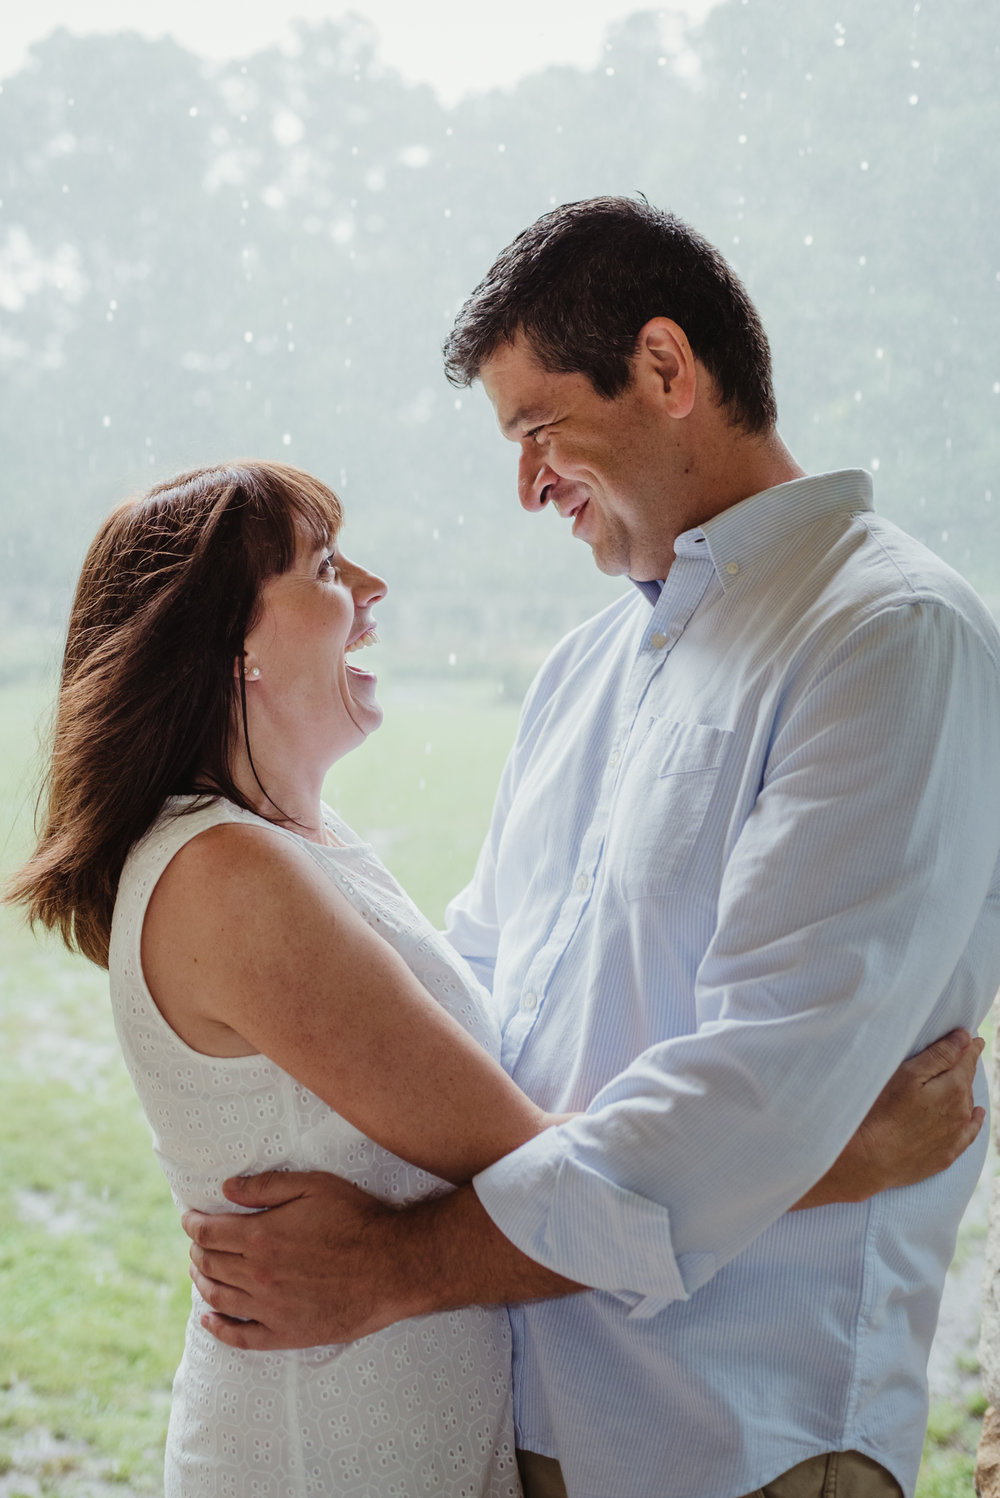 The bride and groom to be hold each other in the shelter during the rainstorm in Raleigh, during their engagement session with Rose Trail Images.